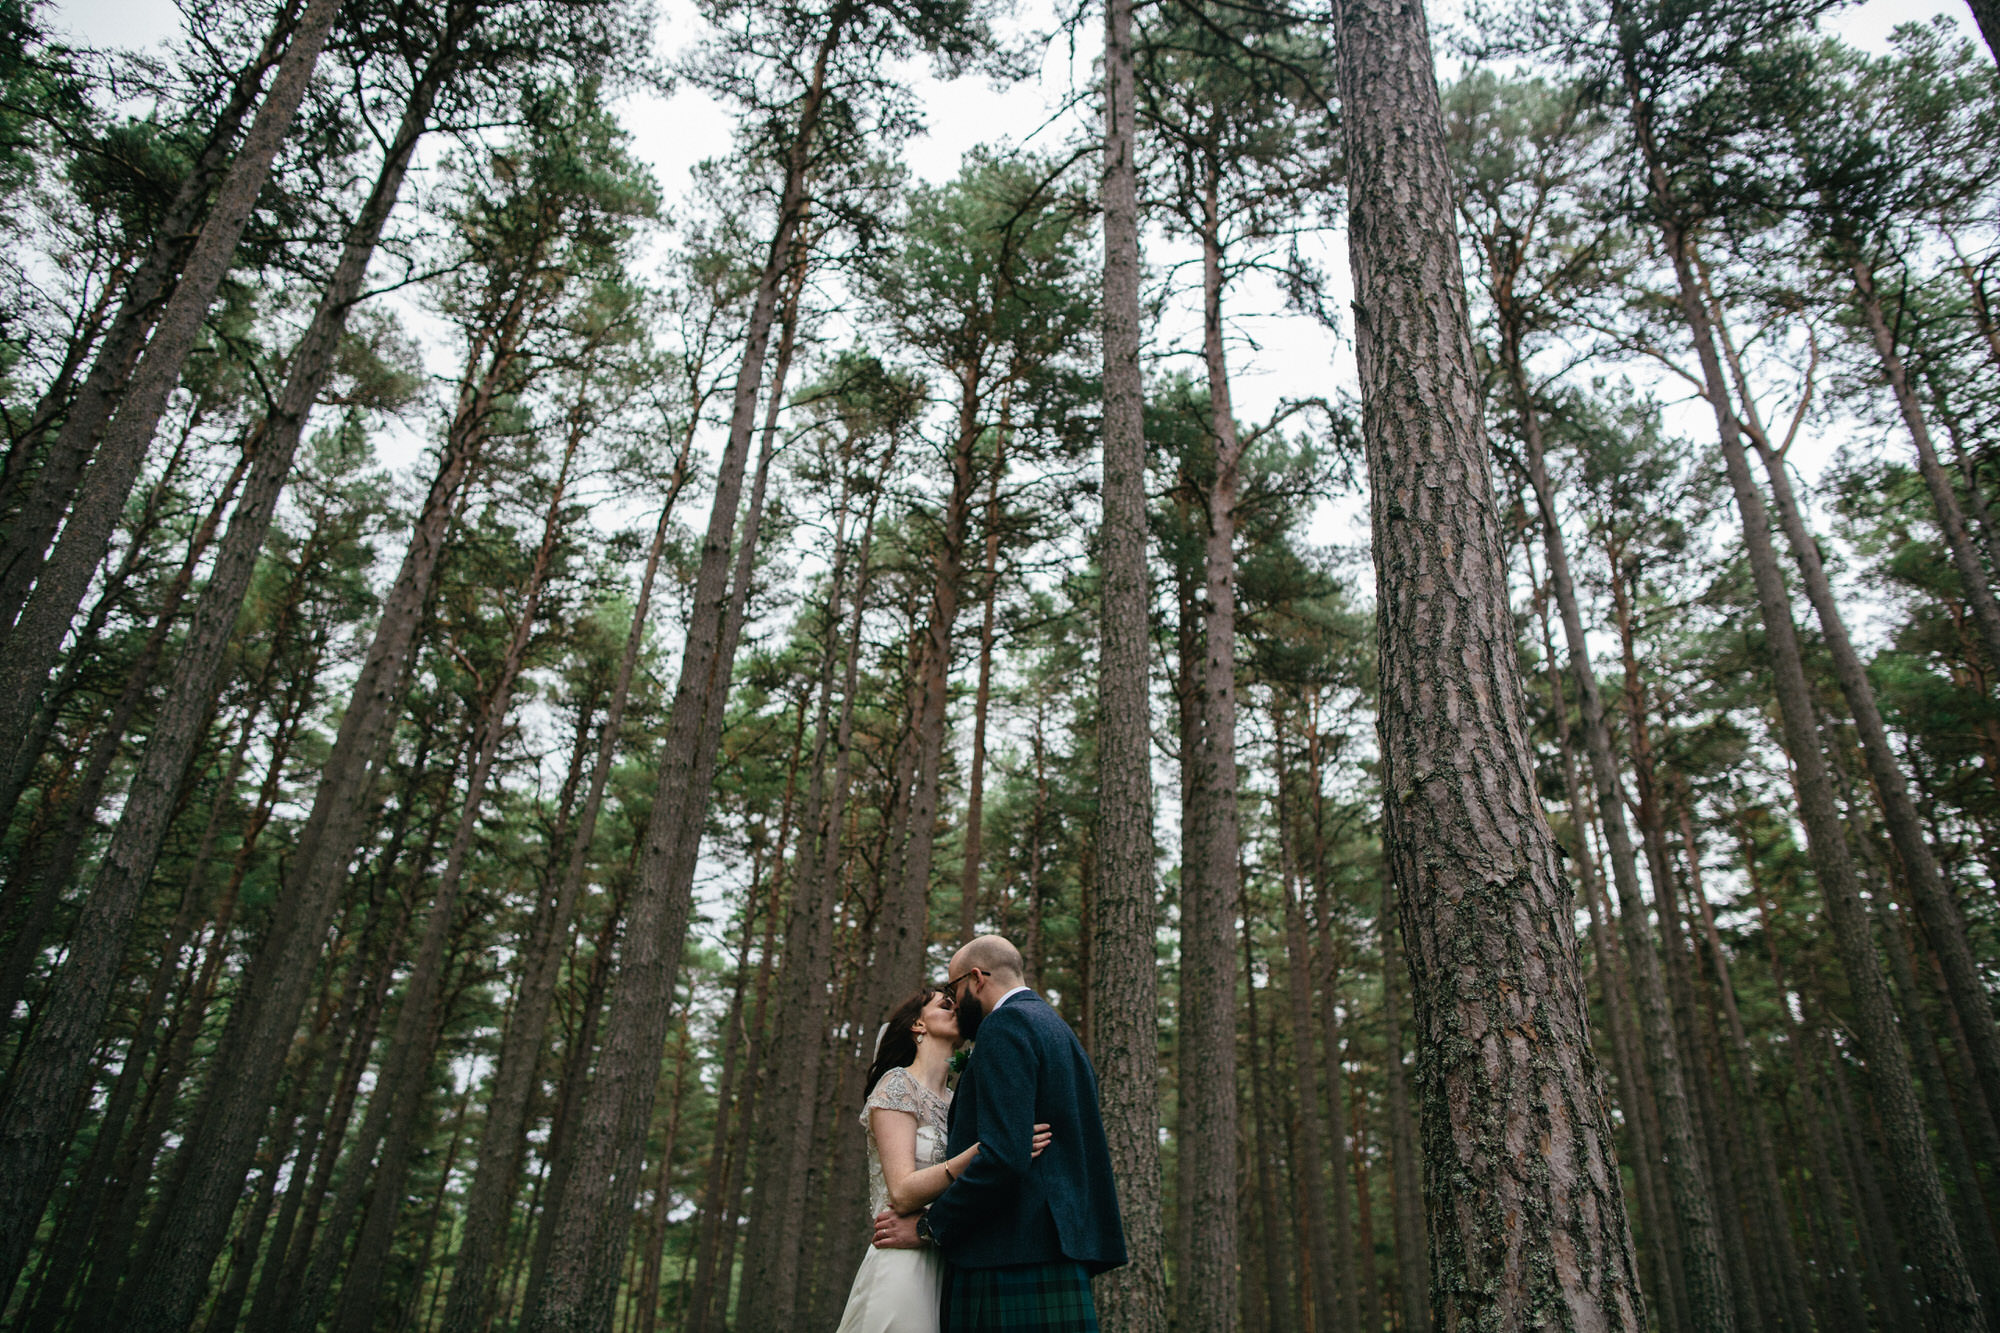 Alternative Natural Quirky Wedding Photographs UK Scotland 119.jpg